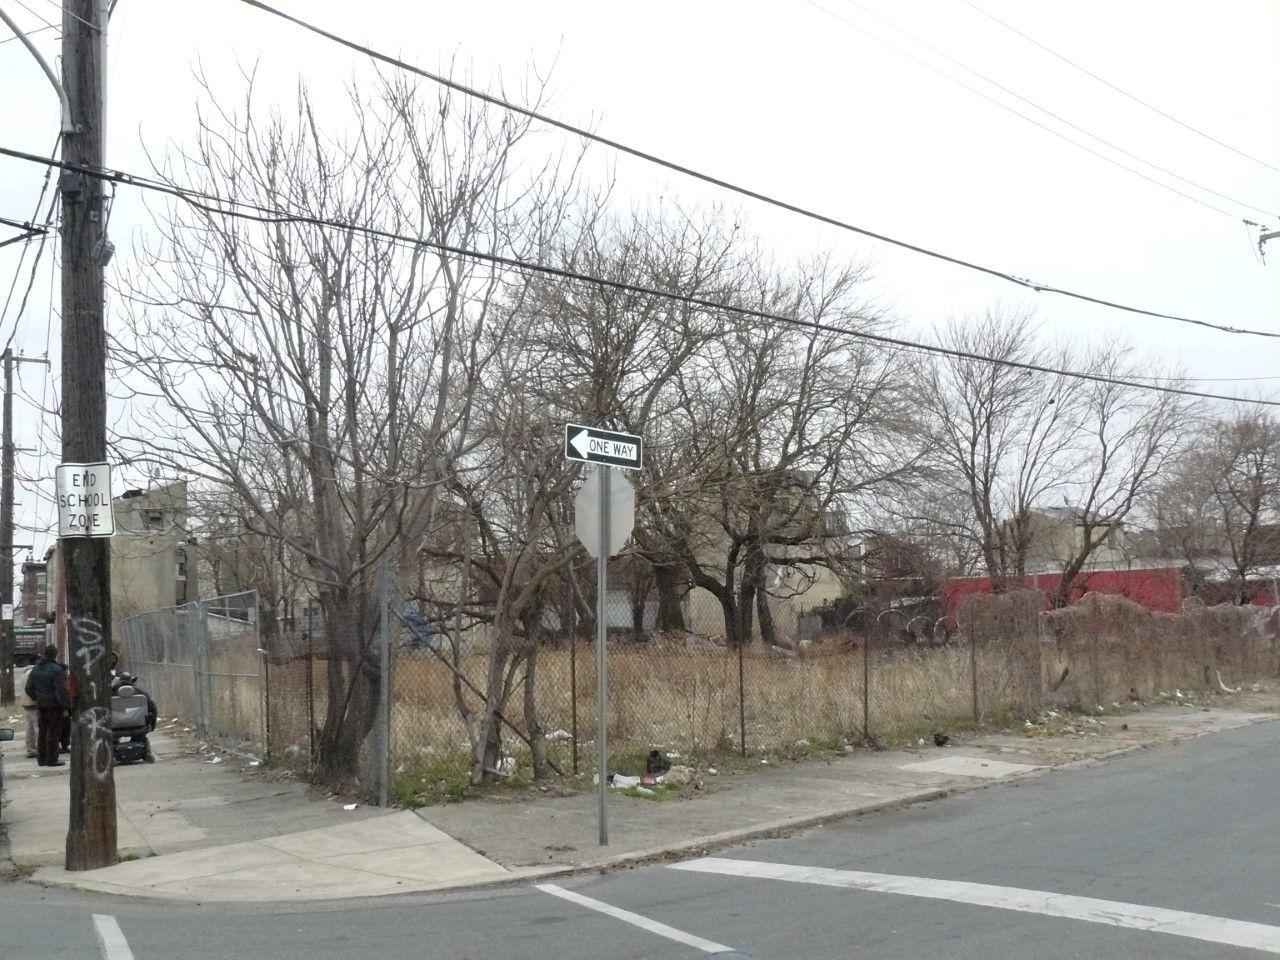 Philadelphia Tribune: Housing advocates call for community control of city-owned vacant land